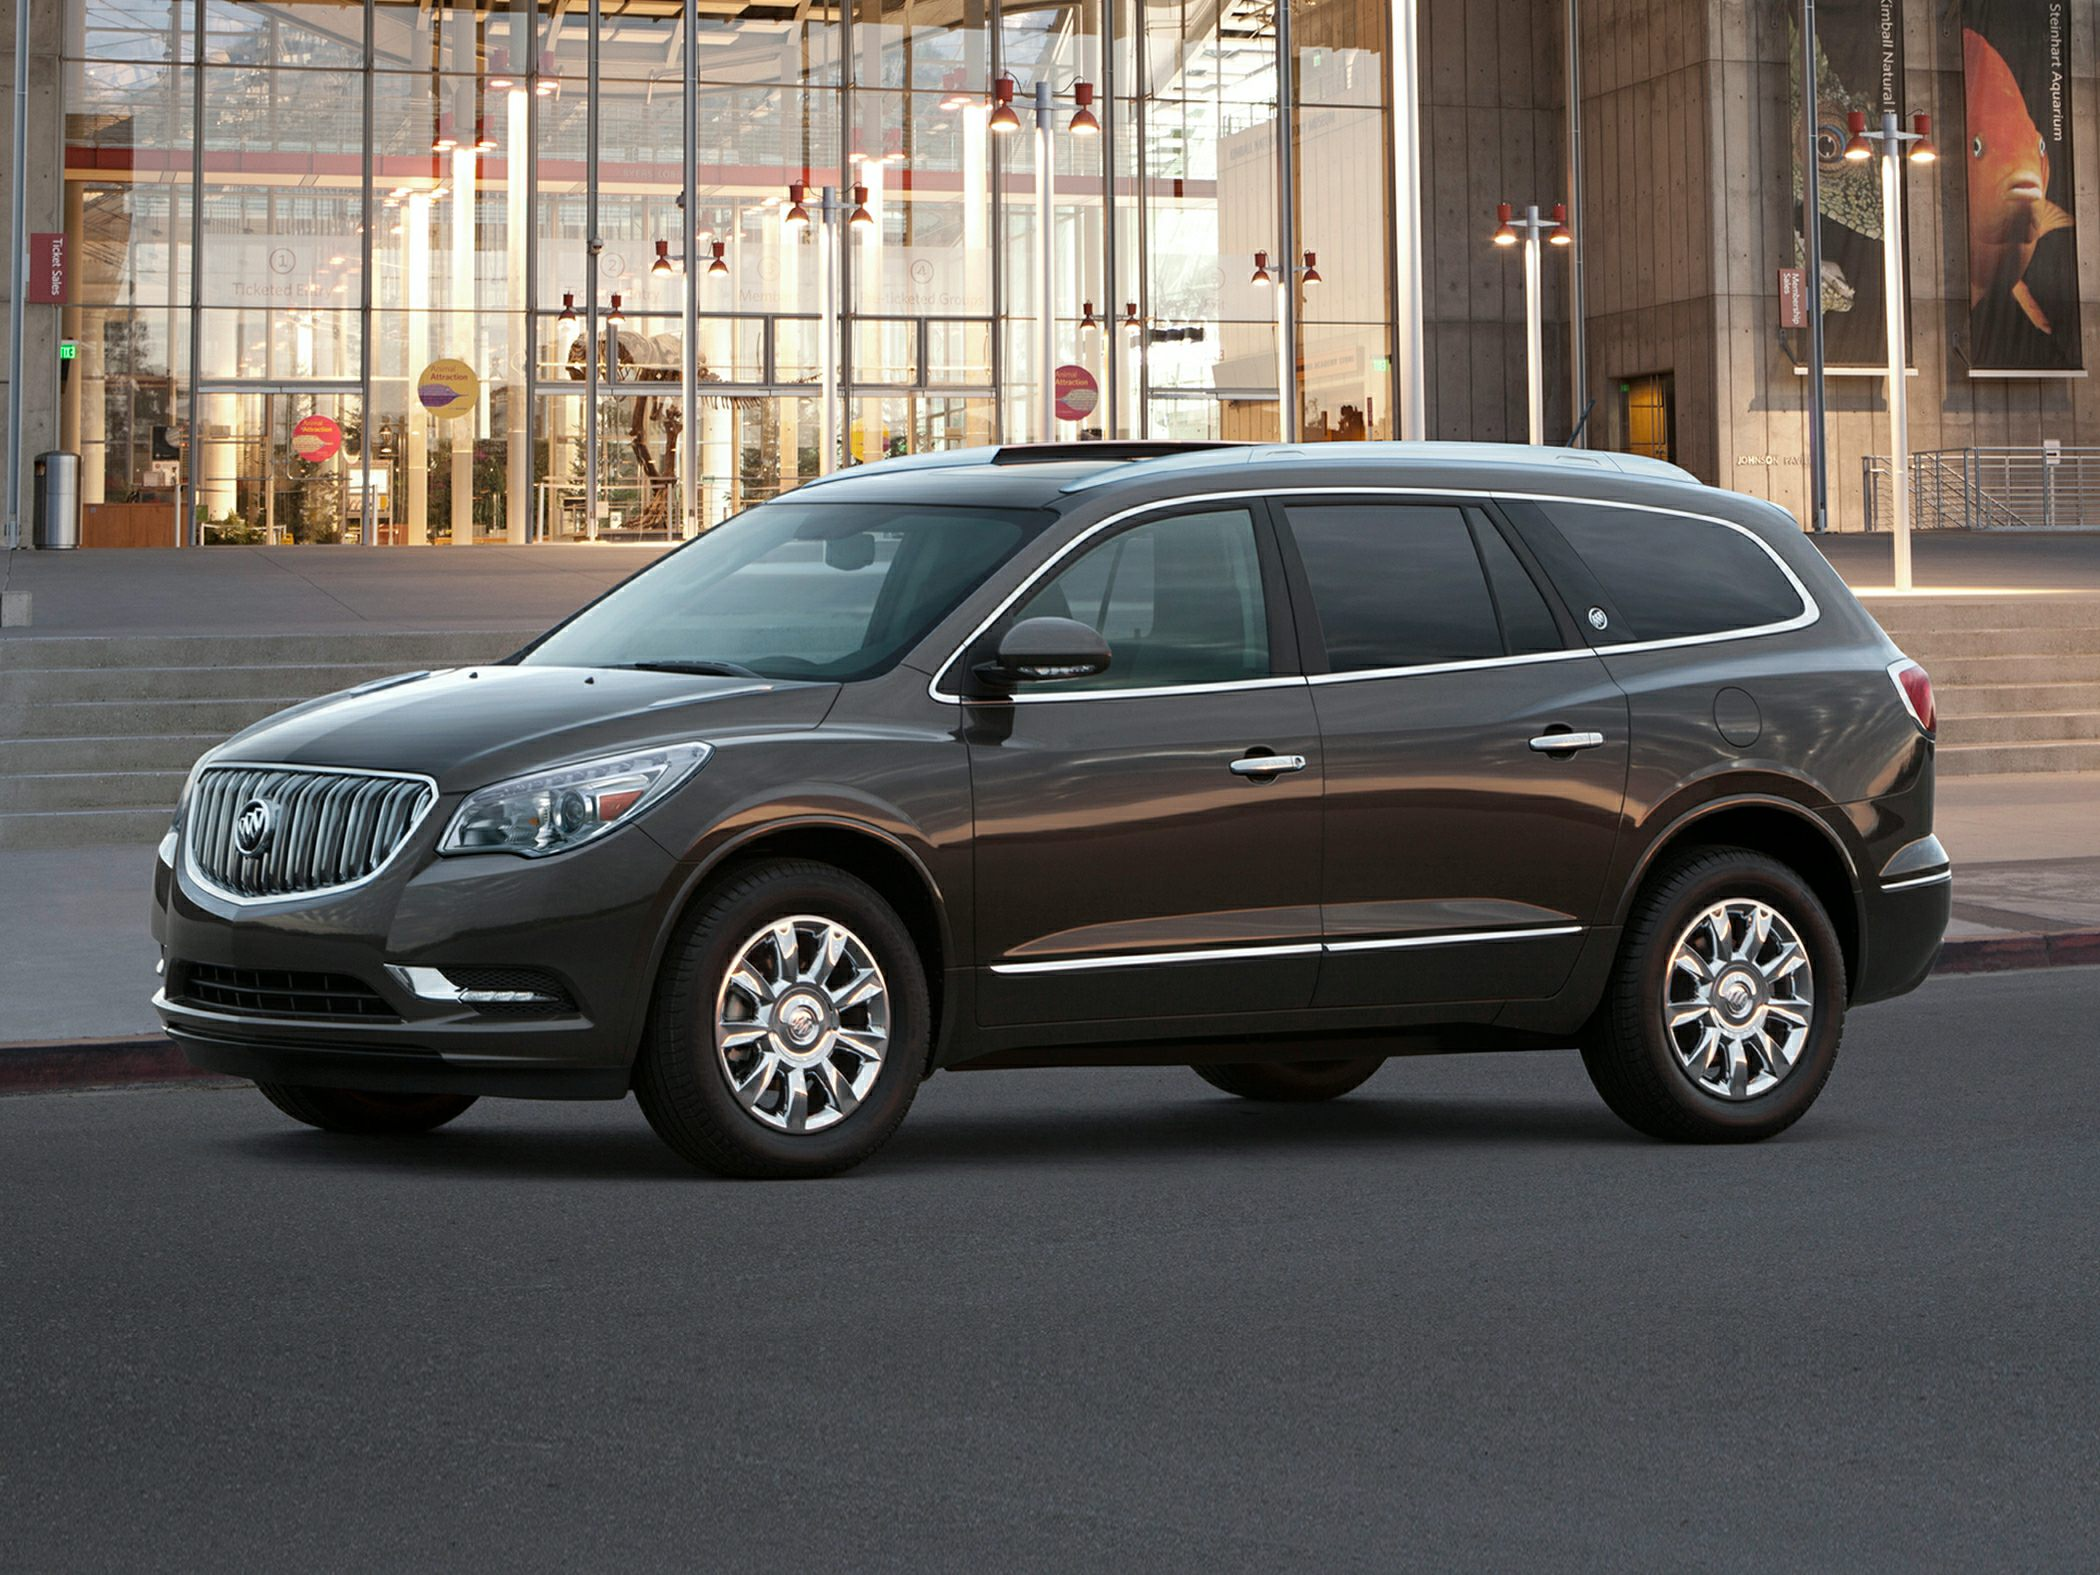 2013 Buick Enclave Leather Group Courtesy vehicle  Includes factory rebates Want to stretch your